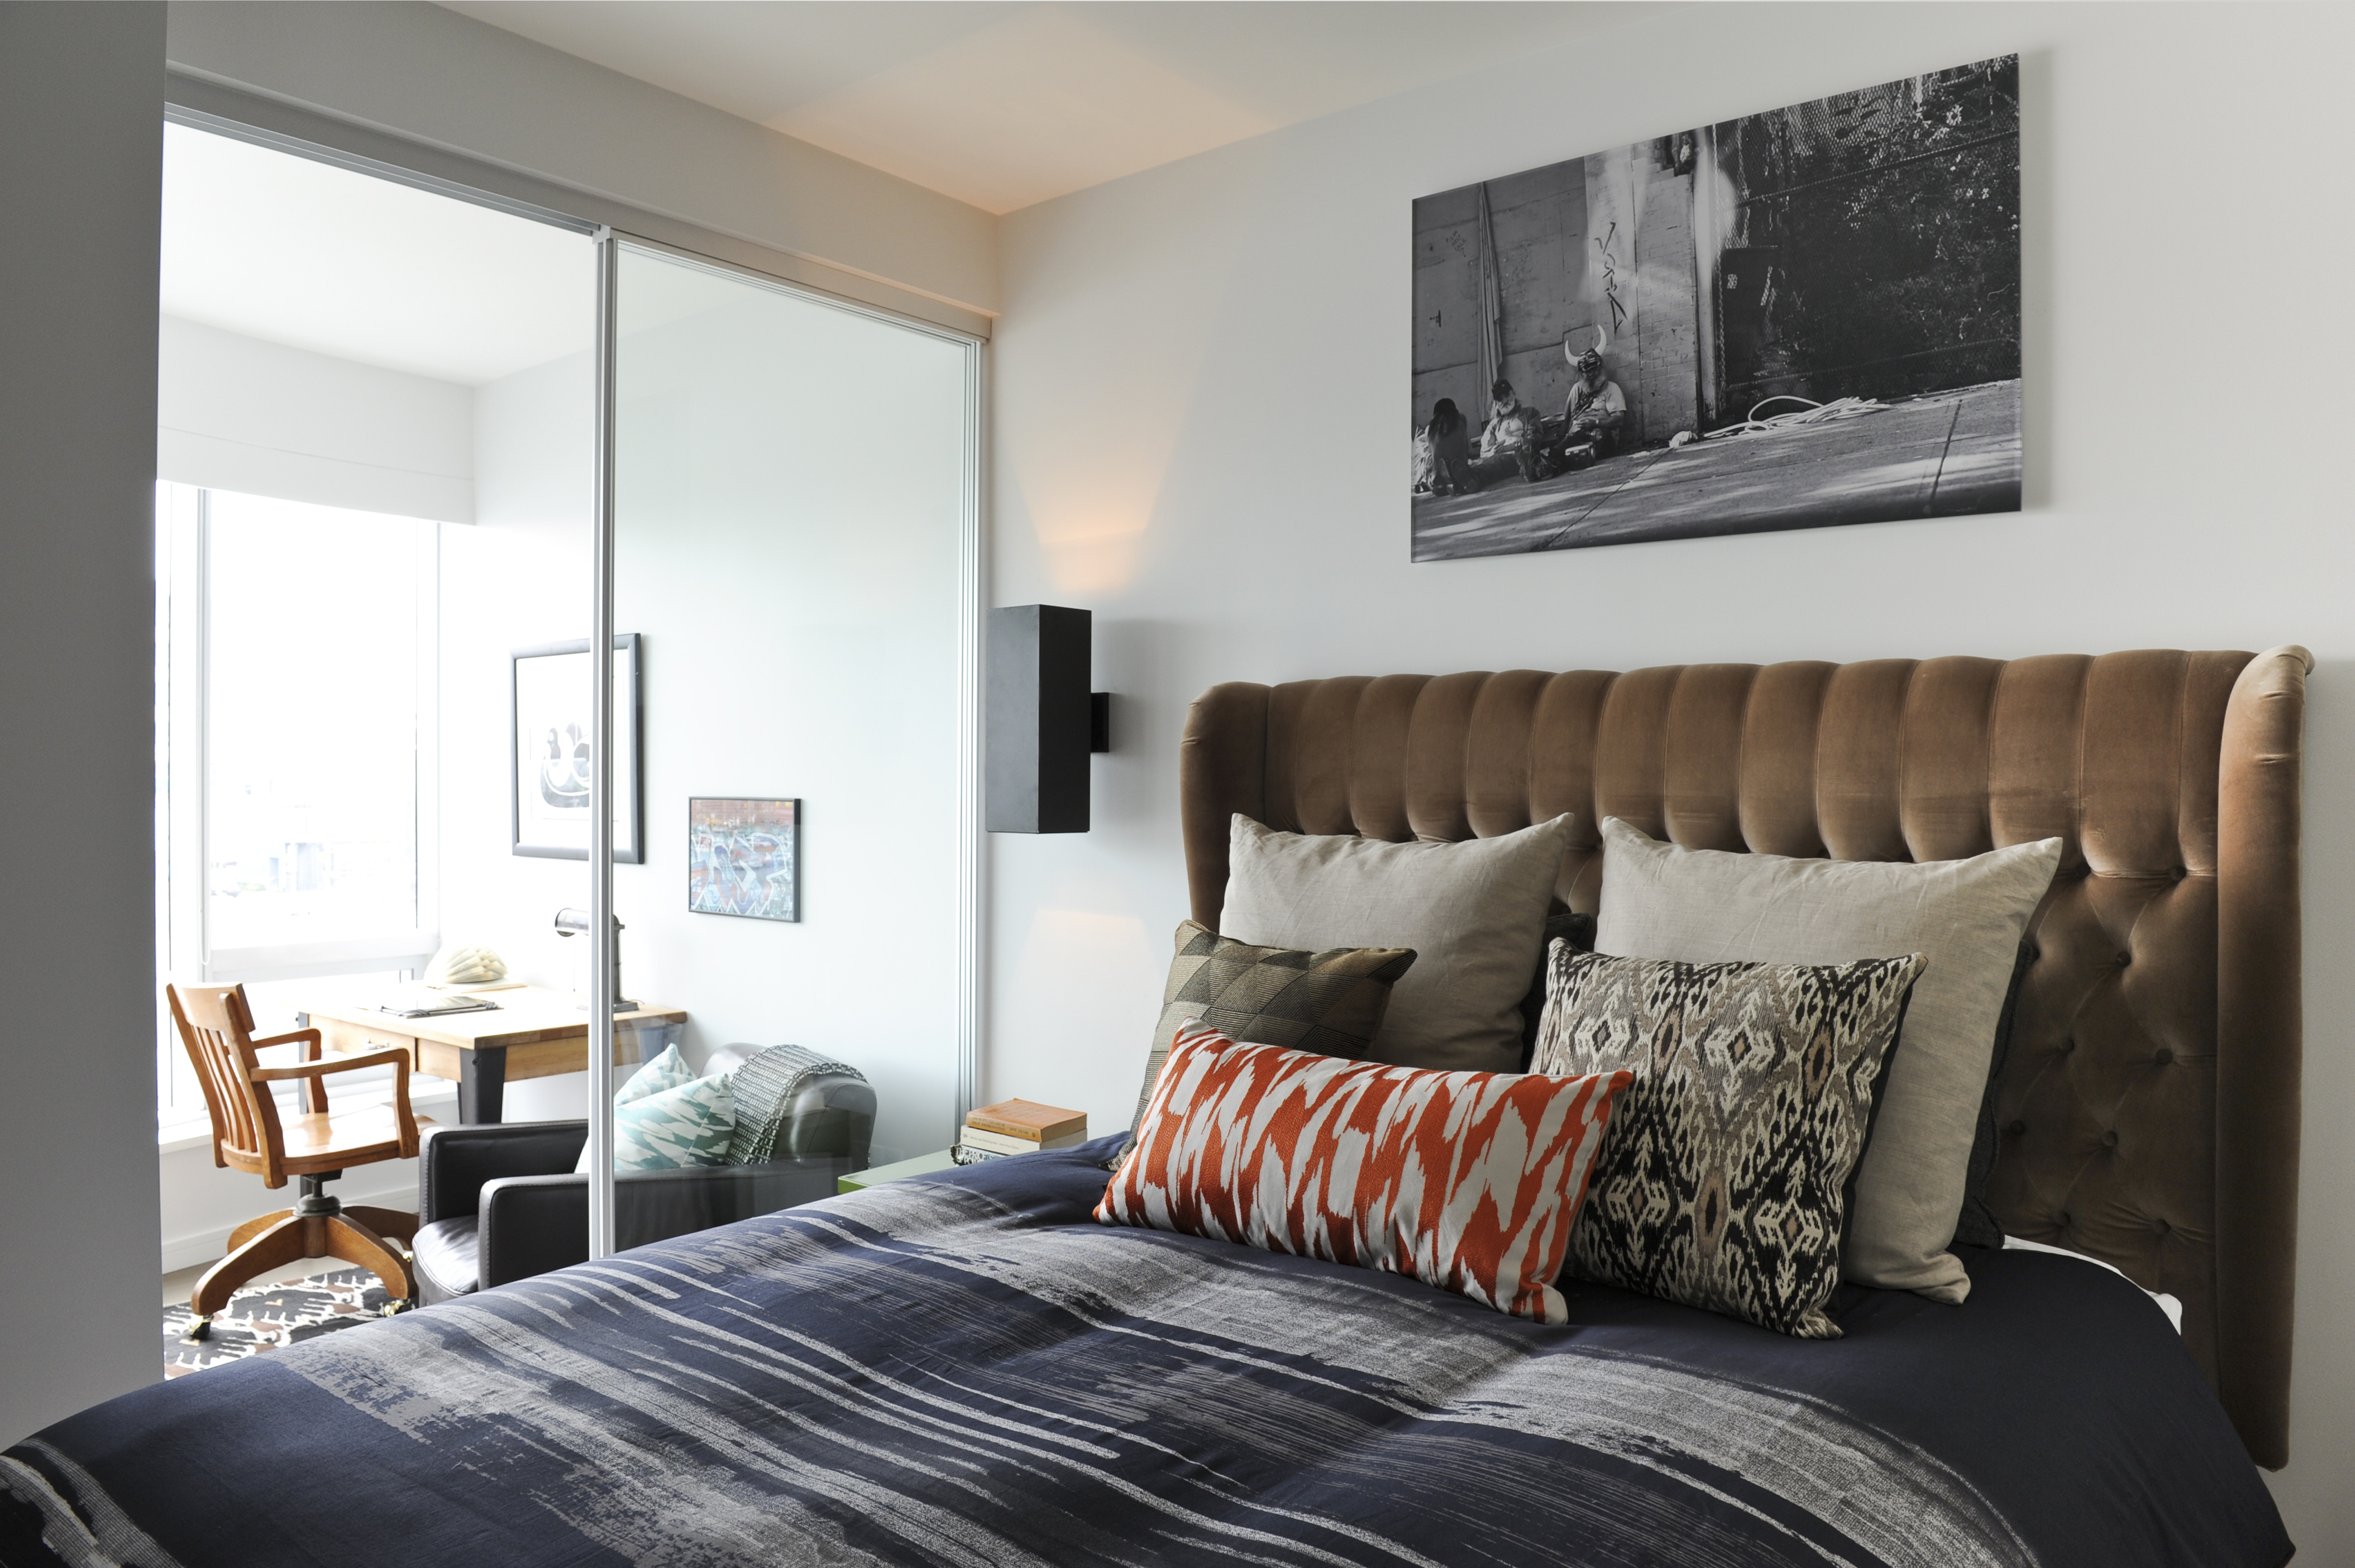 Bachelor Bedrooms Ideas The Urban Un Bachelor Pad Chicks On The Go